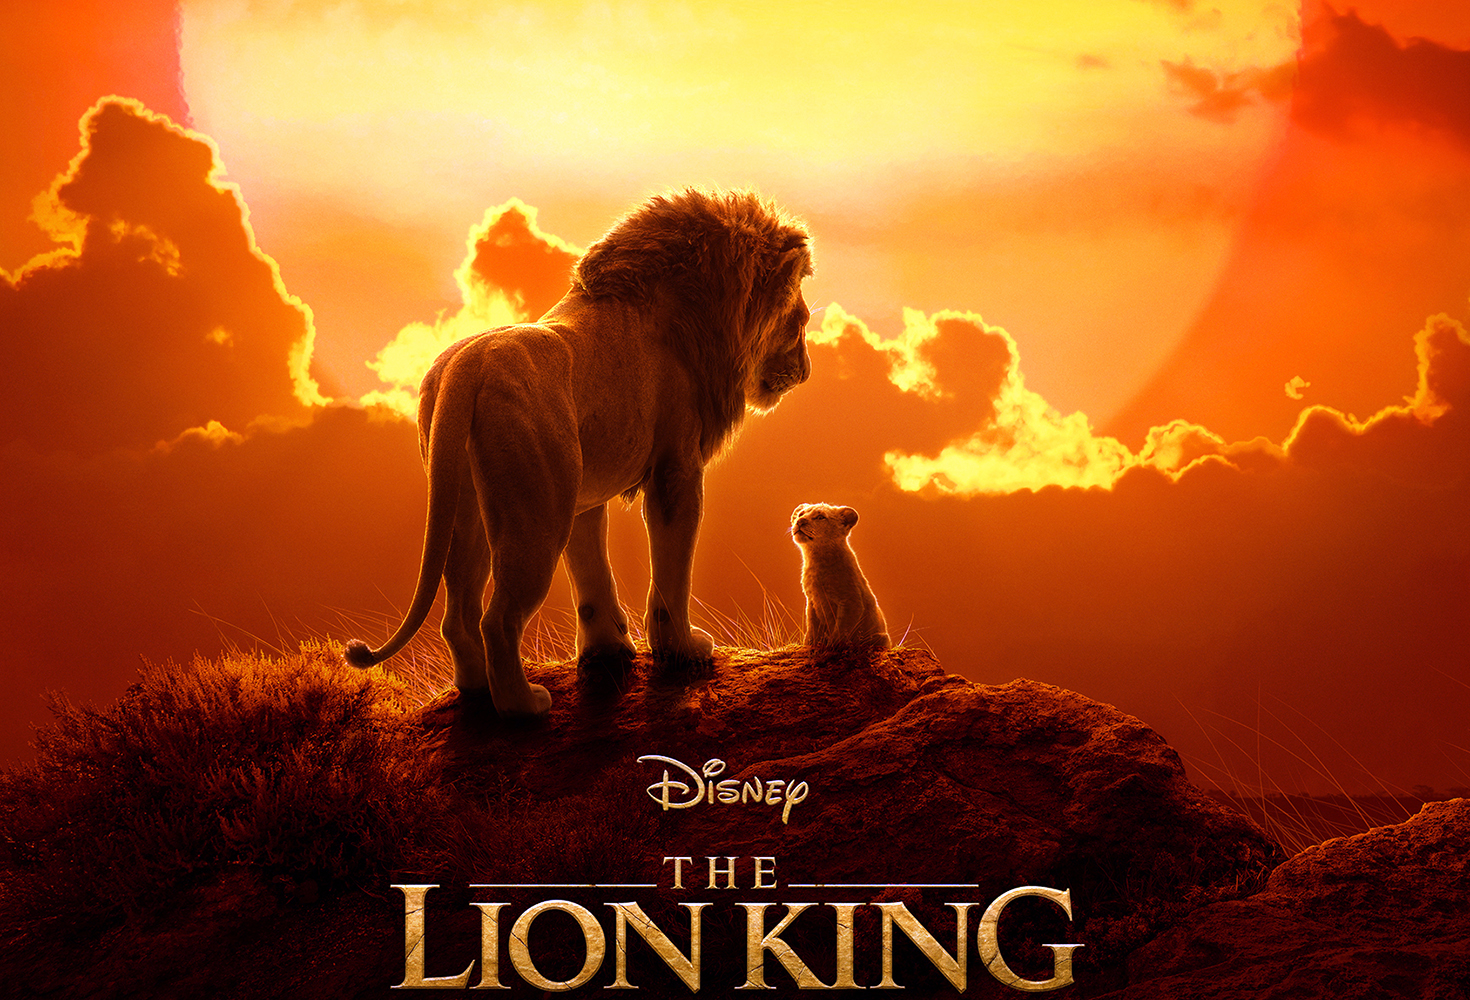 disney the lion king movie july 19 2019 trailer trailers with king